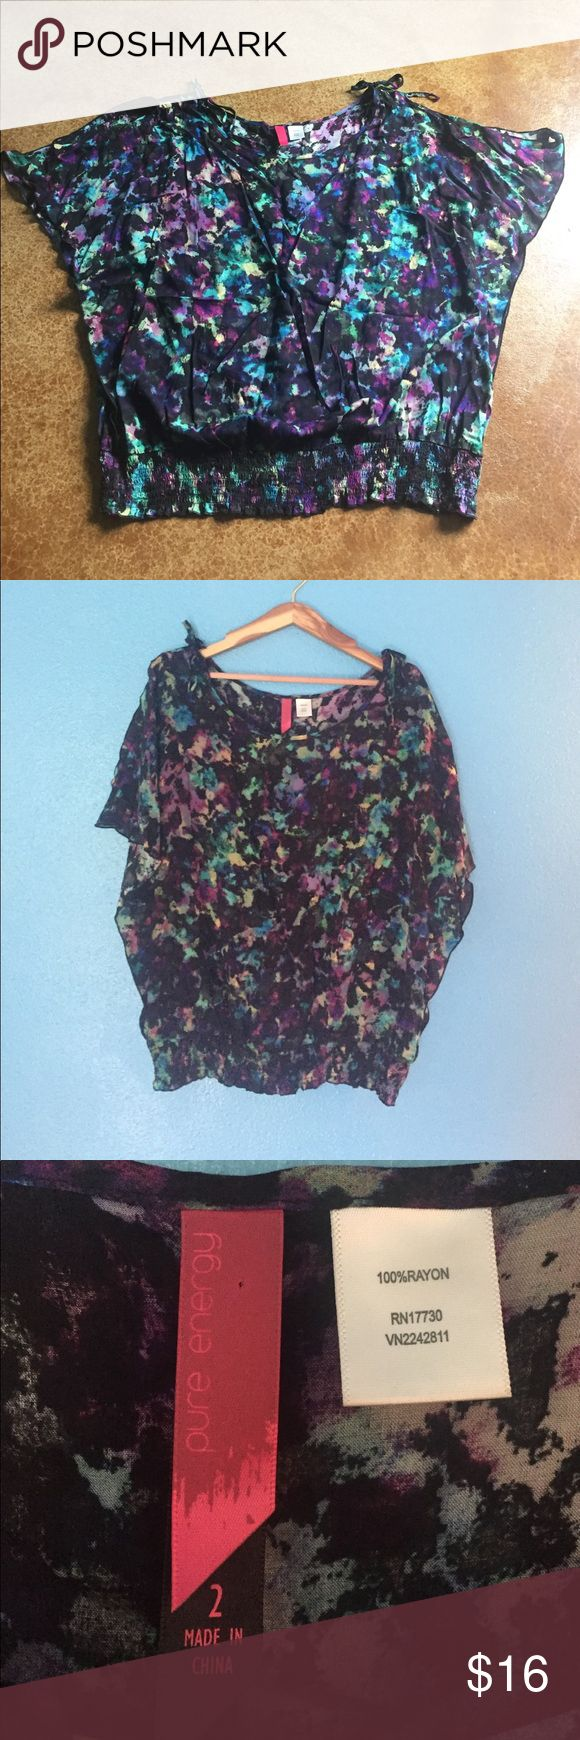 Pure Energy 2X cold shoulder top This size 2 (2X) Pure Energy top has a bright abstract pattern and black base, cold shoulder glitter sleeves with a scoop neck and decorative ties. The elastic band at waist gives adjustable fit. Laid flat it measures 24 inches at bust, 20 at waist band (with lots more stretch there) and 27 inches shoulder to hem. Gently used and from a smoke free home. Pure Energy Tops Blouses